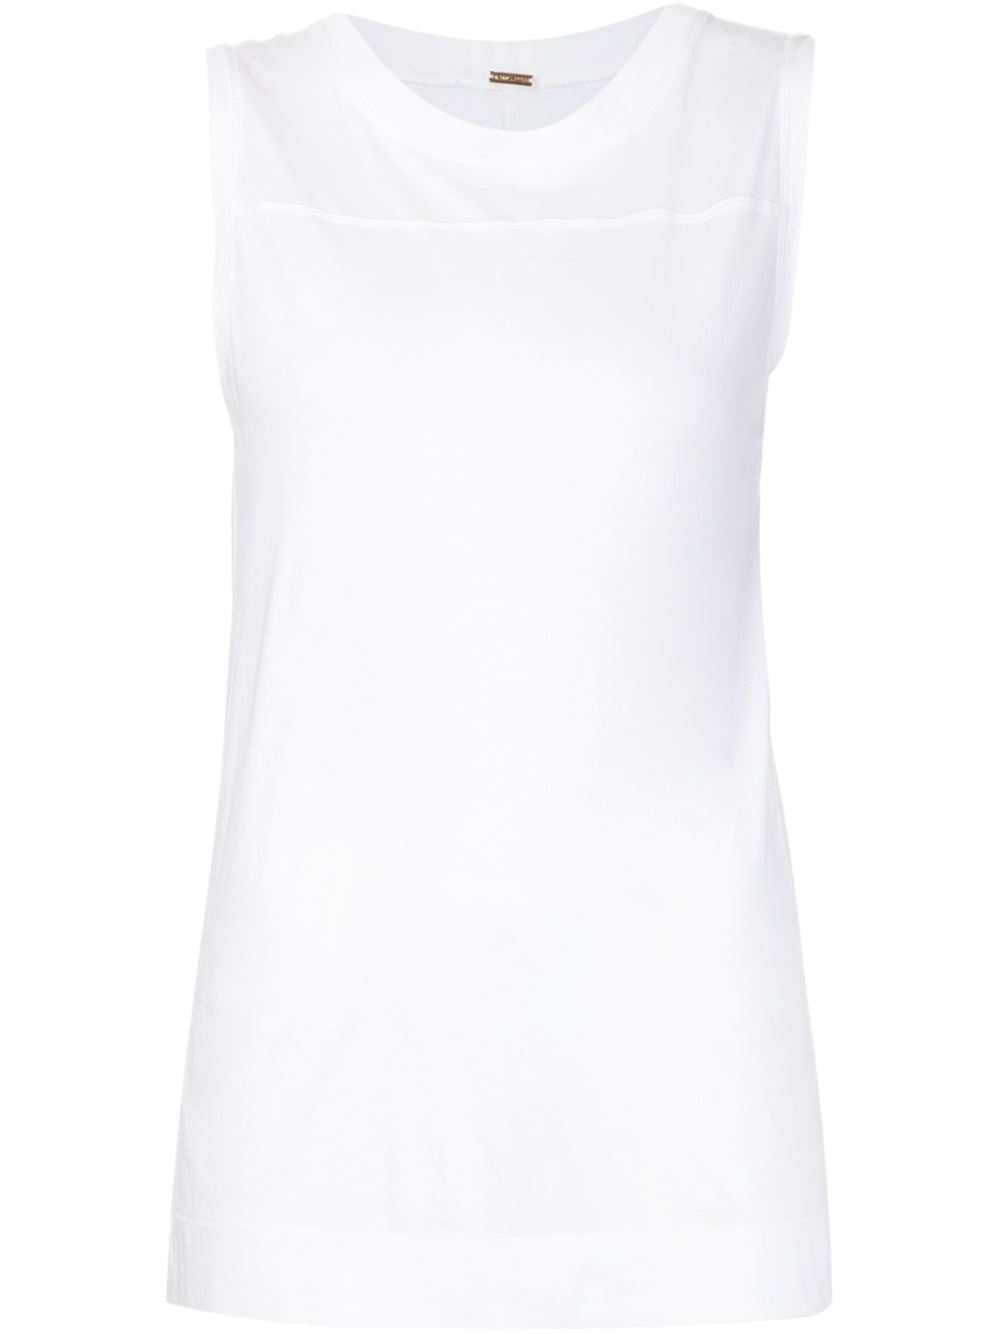 Adam lippes sleeveless t shirt in white lyst for Adam lippes t shirt